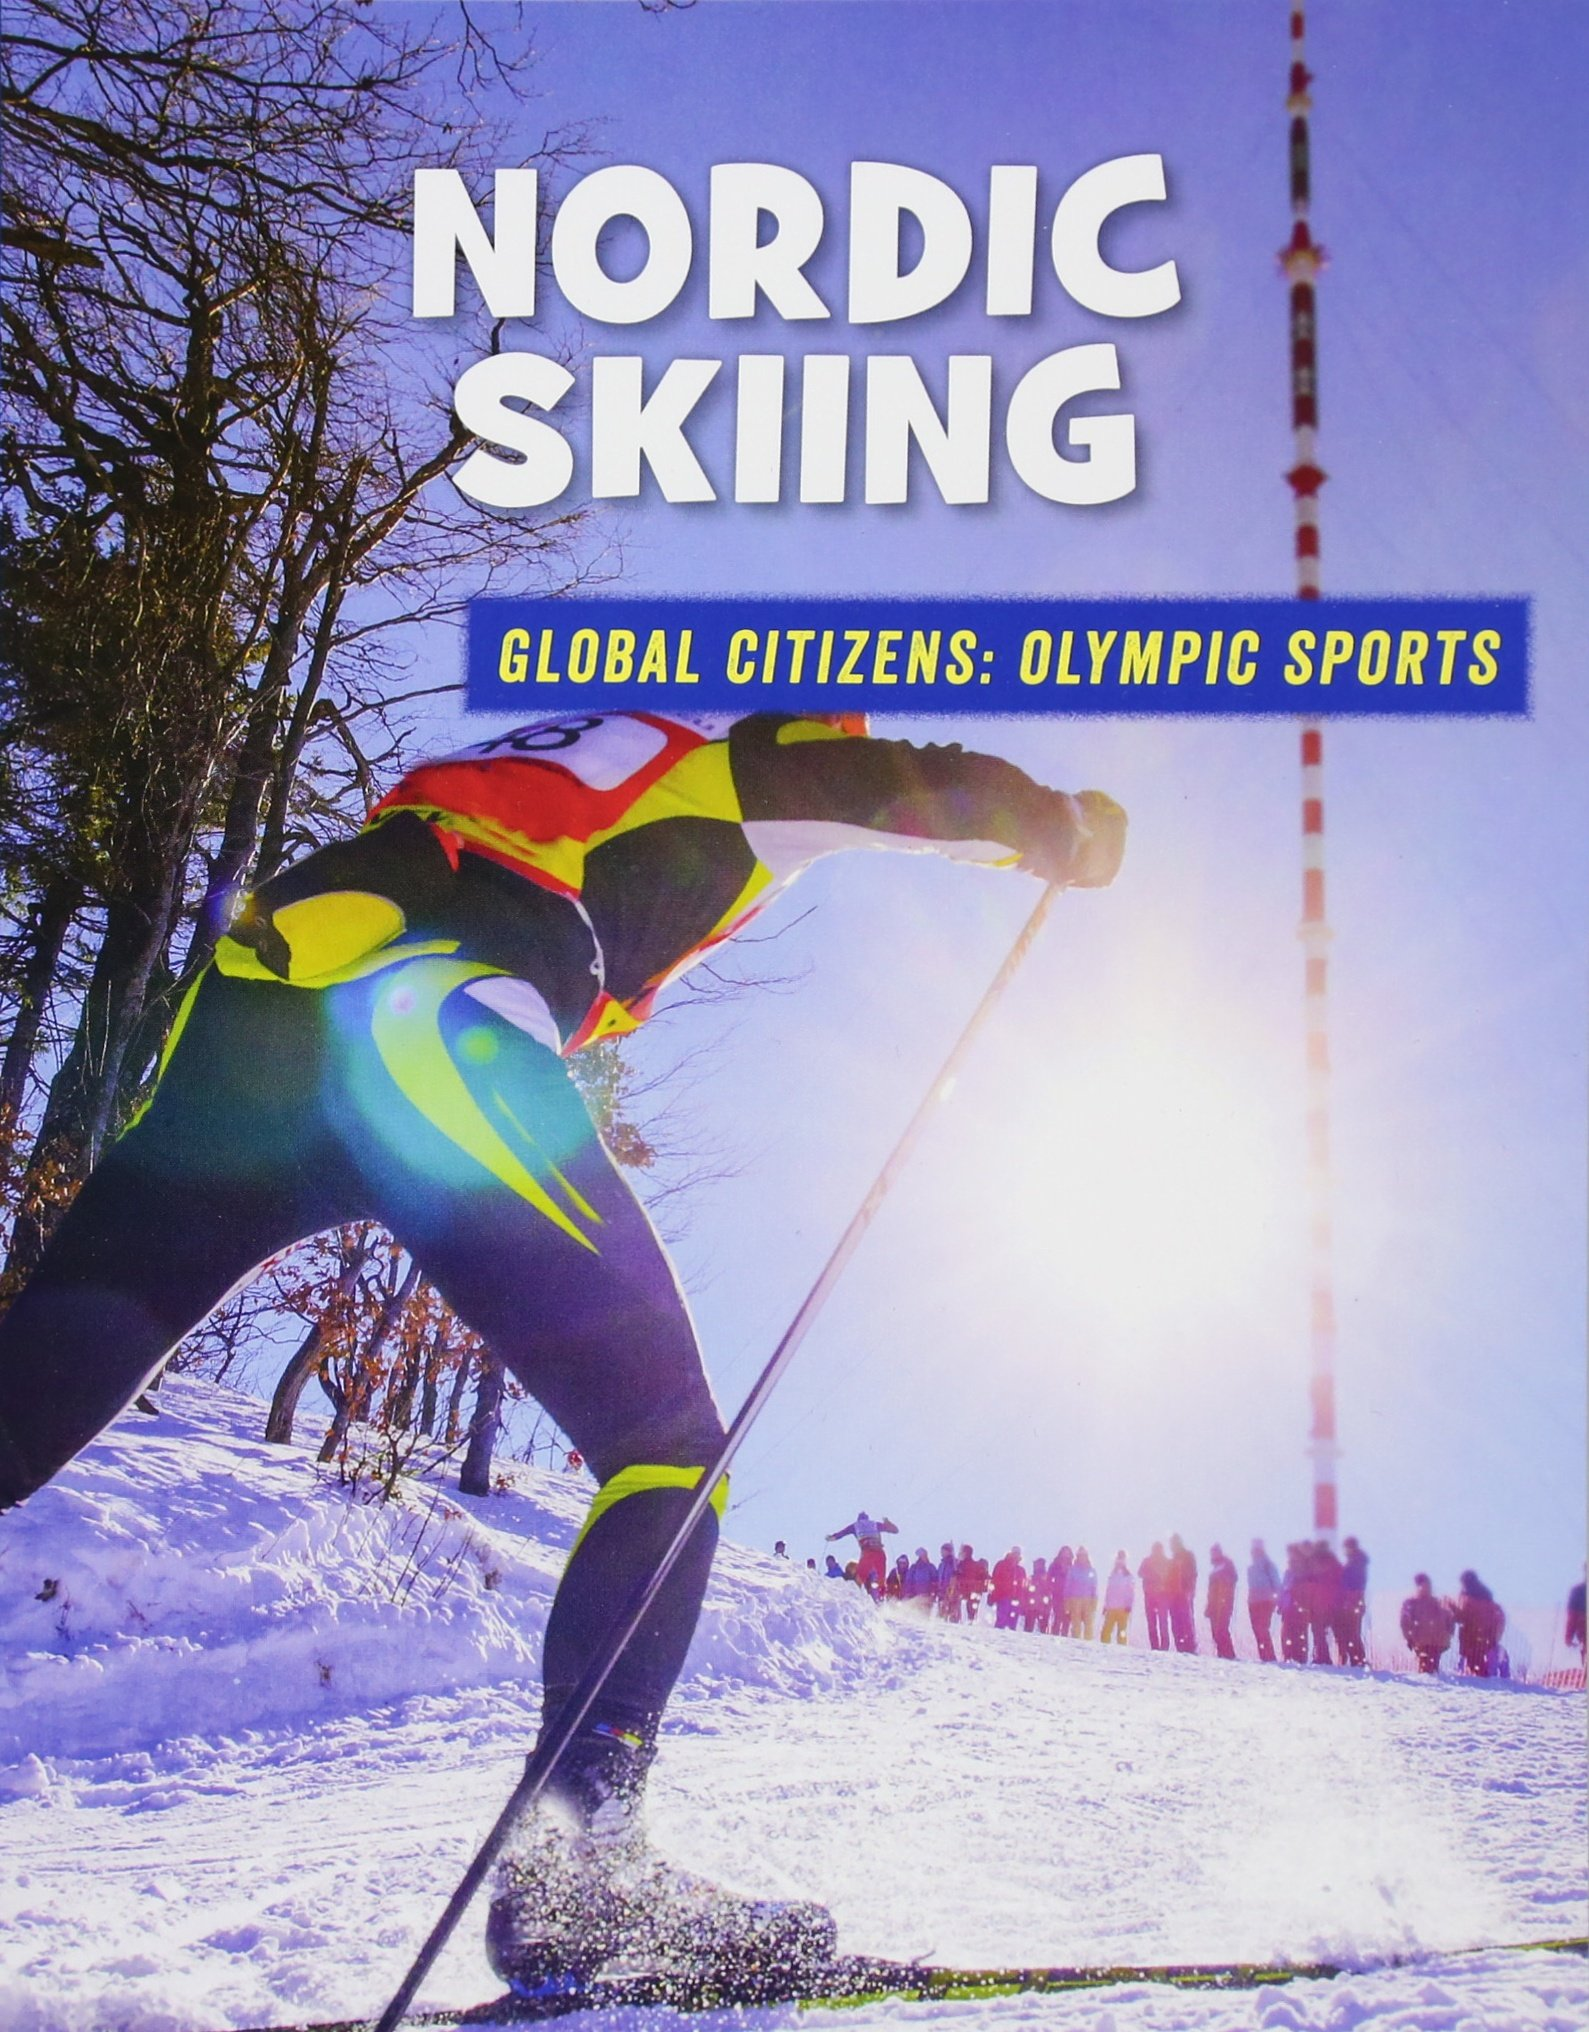 nordic-skiing-21st-century-skills-library-global-citizens-olympic-sports